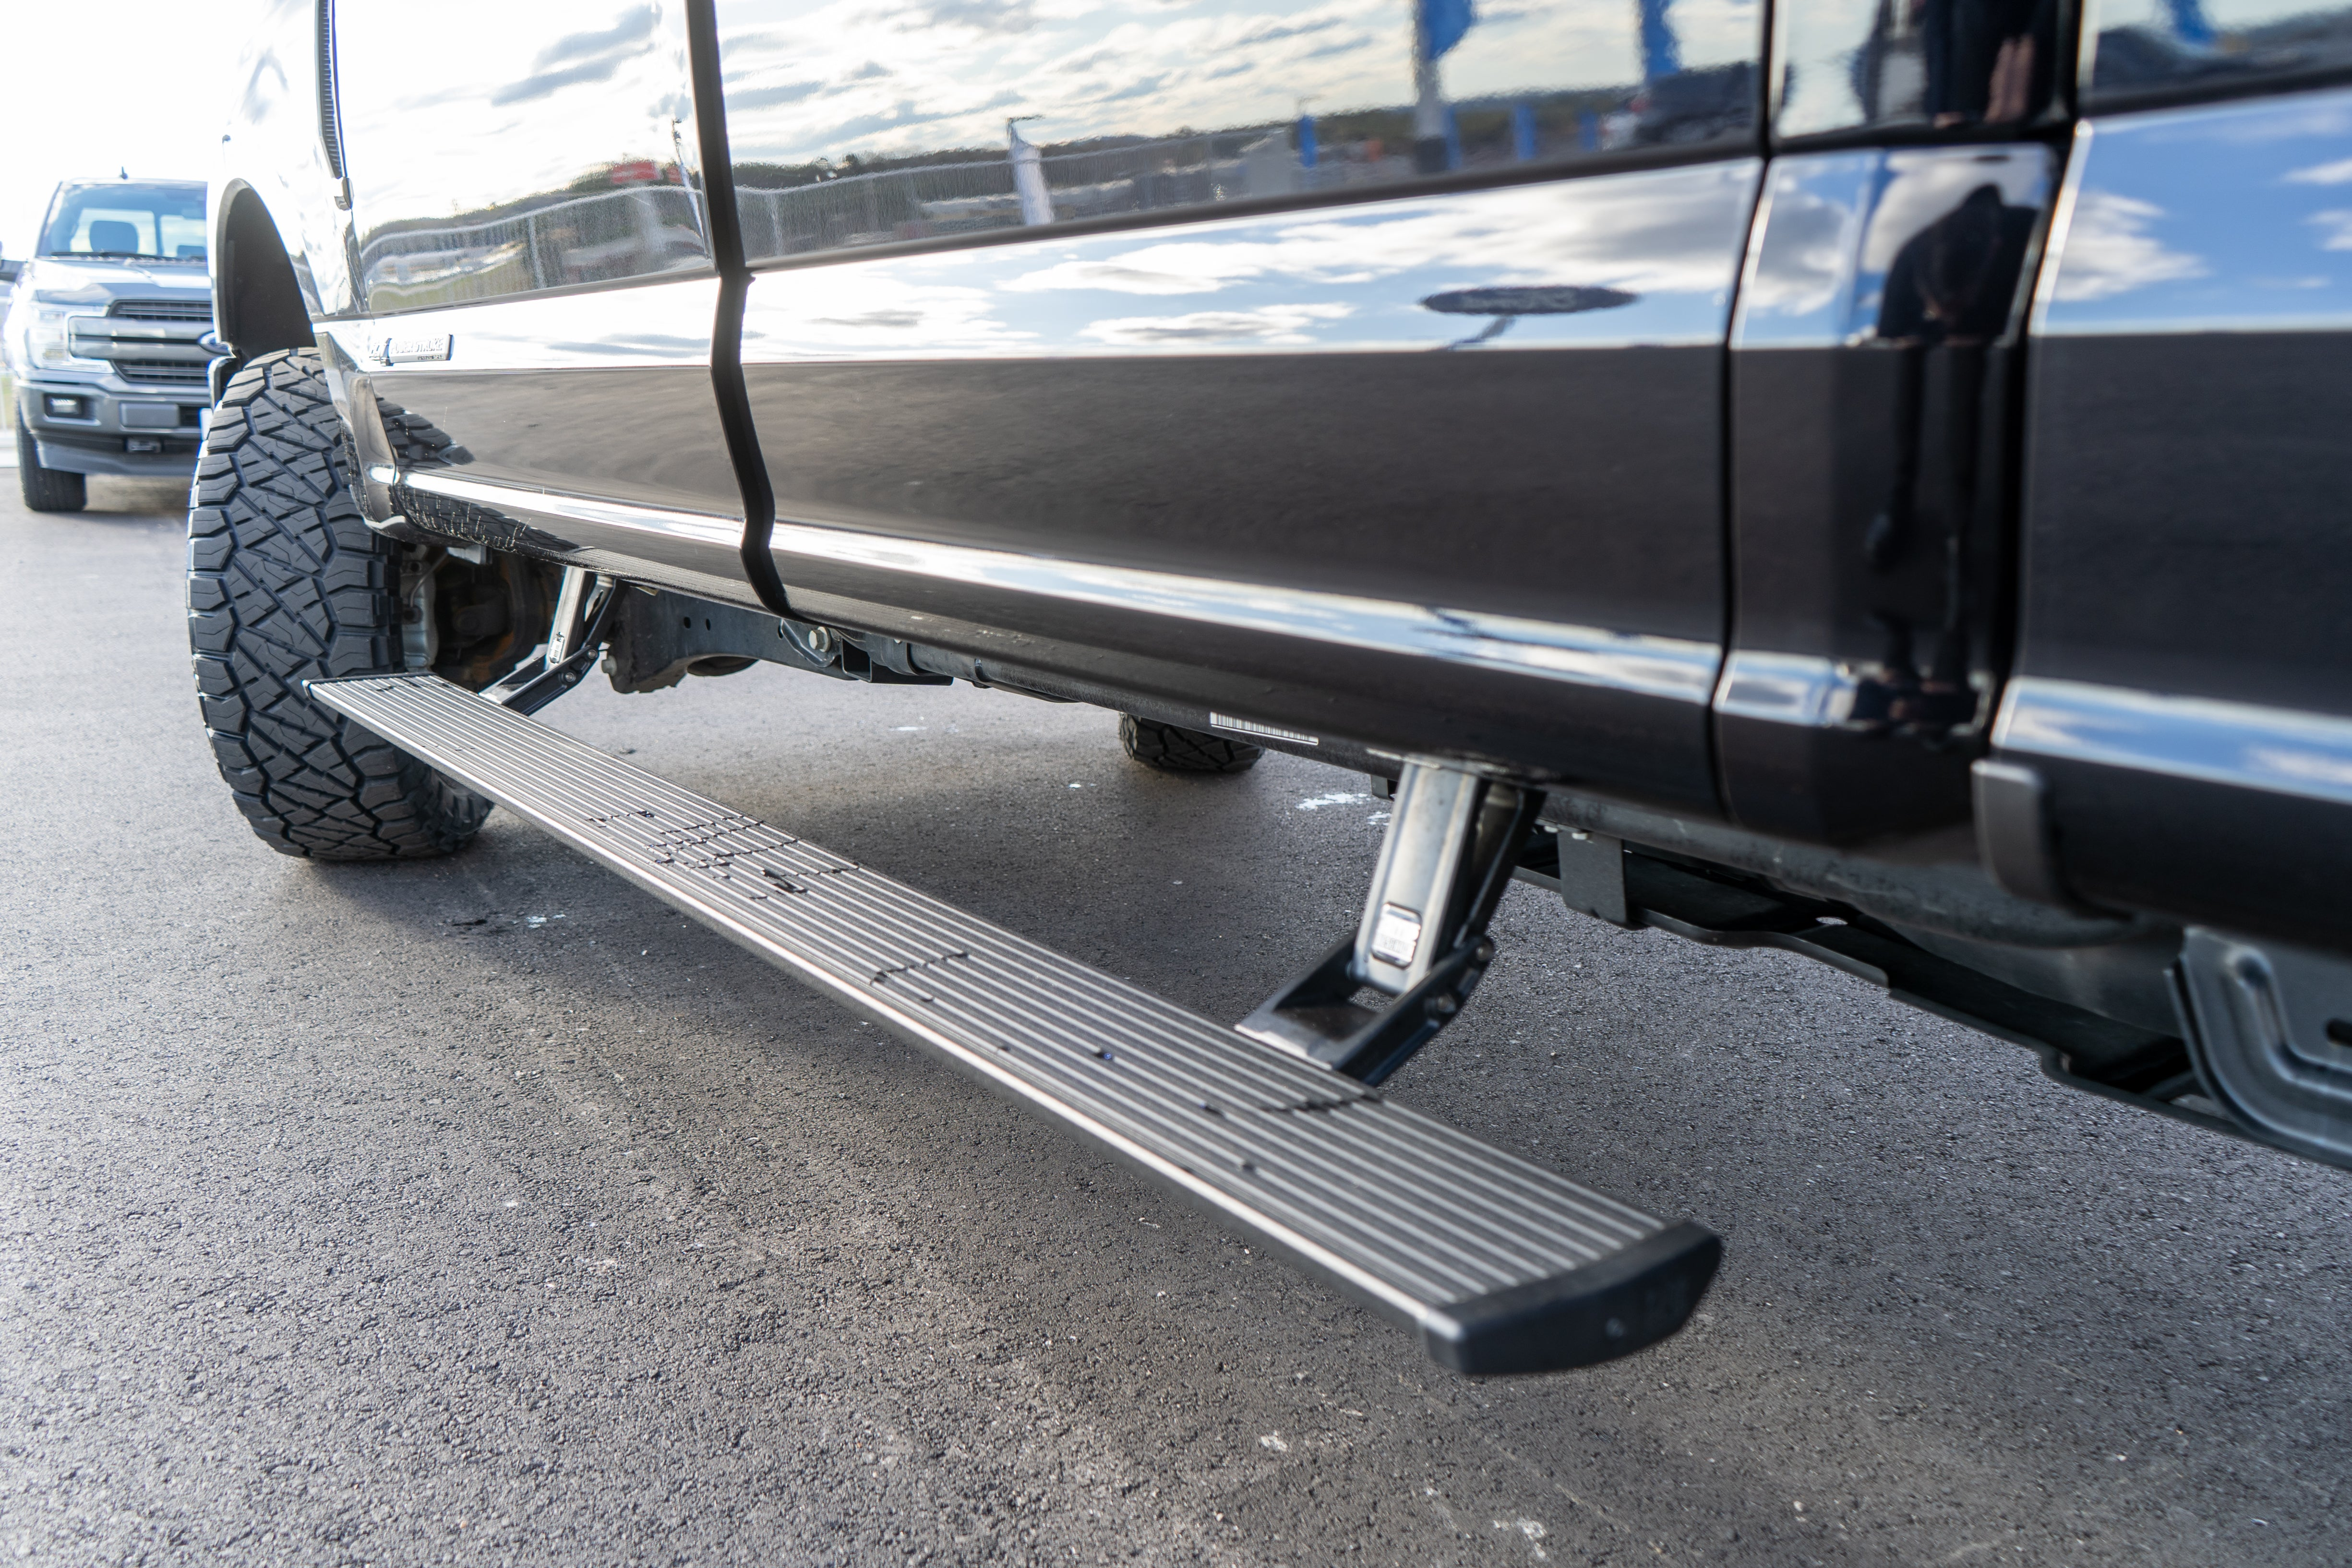 Amp Research Power Deployable Step for 2017-2019 Ford Superduty F-250 F-350 and F-450 - 76235-01A